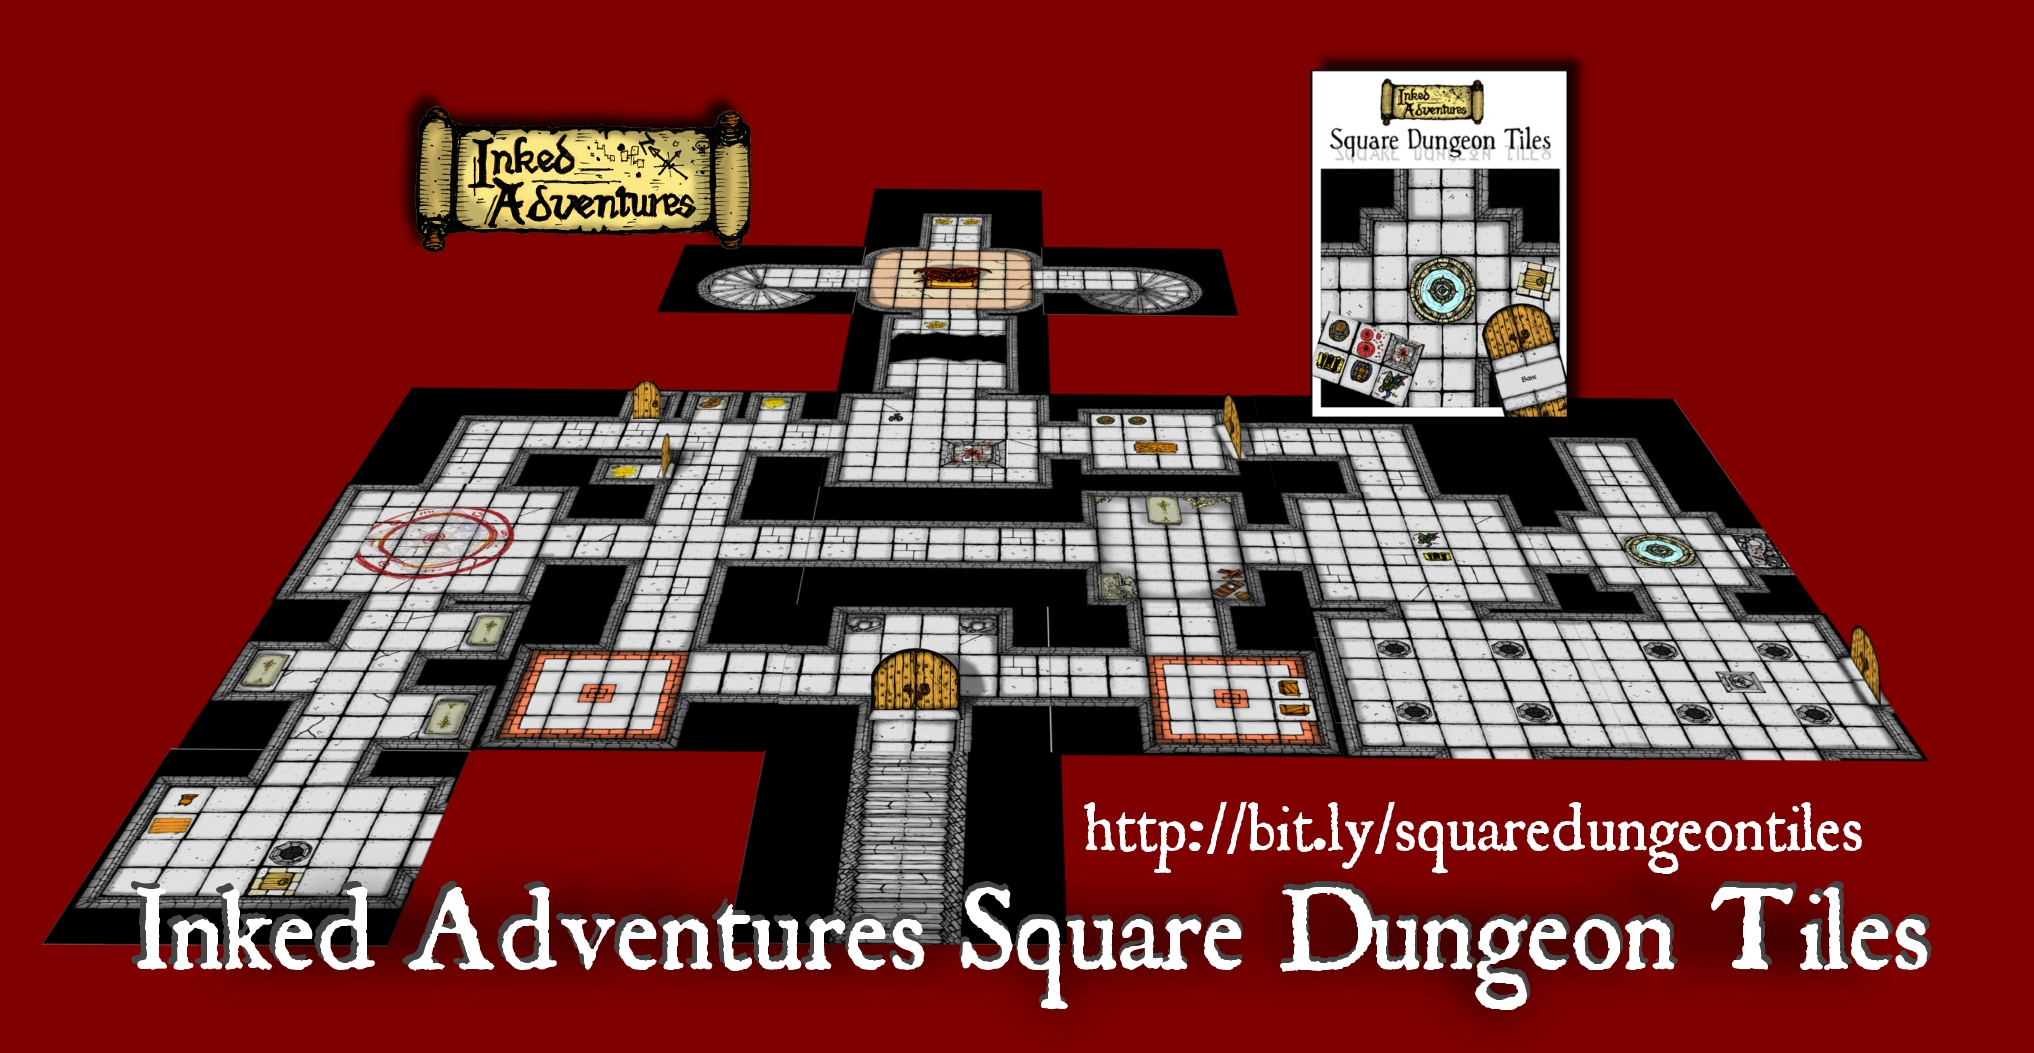 Inked Adventures Square Dungeon Tiles promo mock-up map